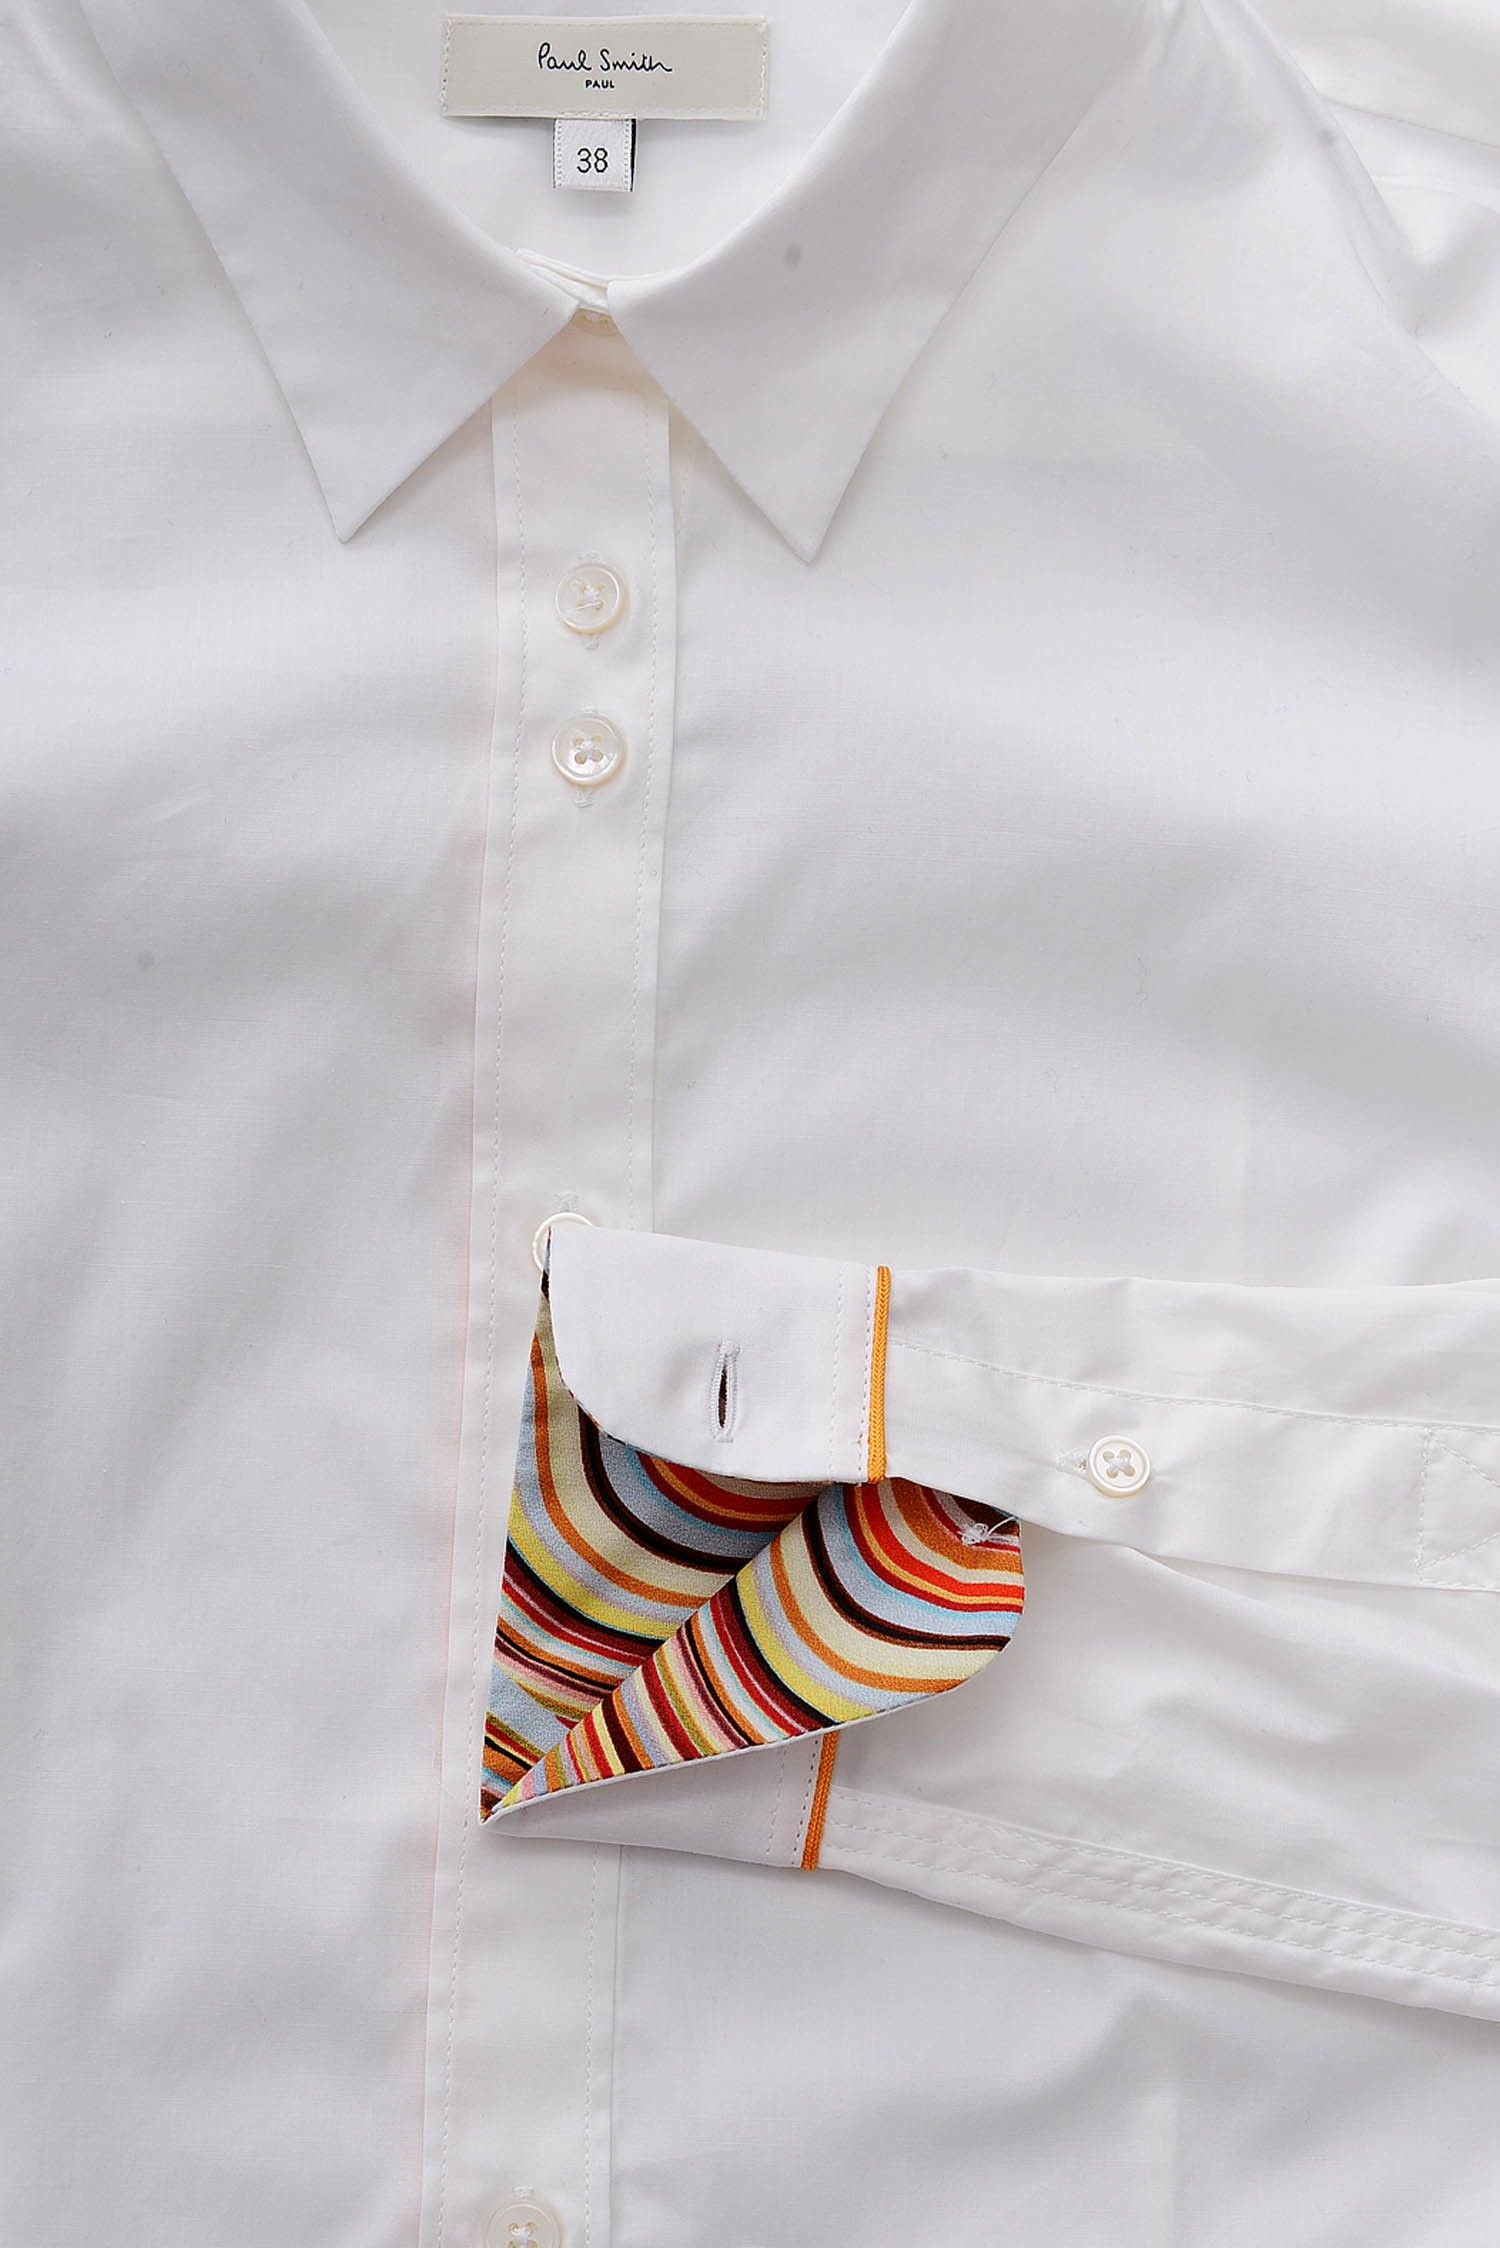 Cufflink shirt - features, rules and recommendations 7